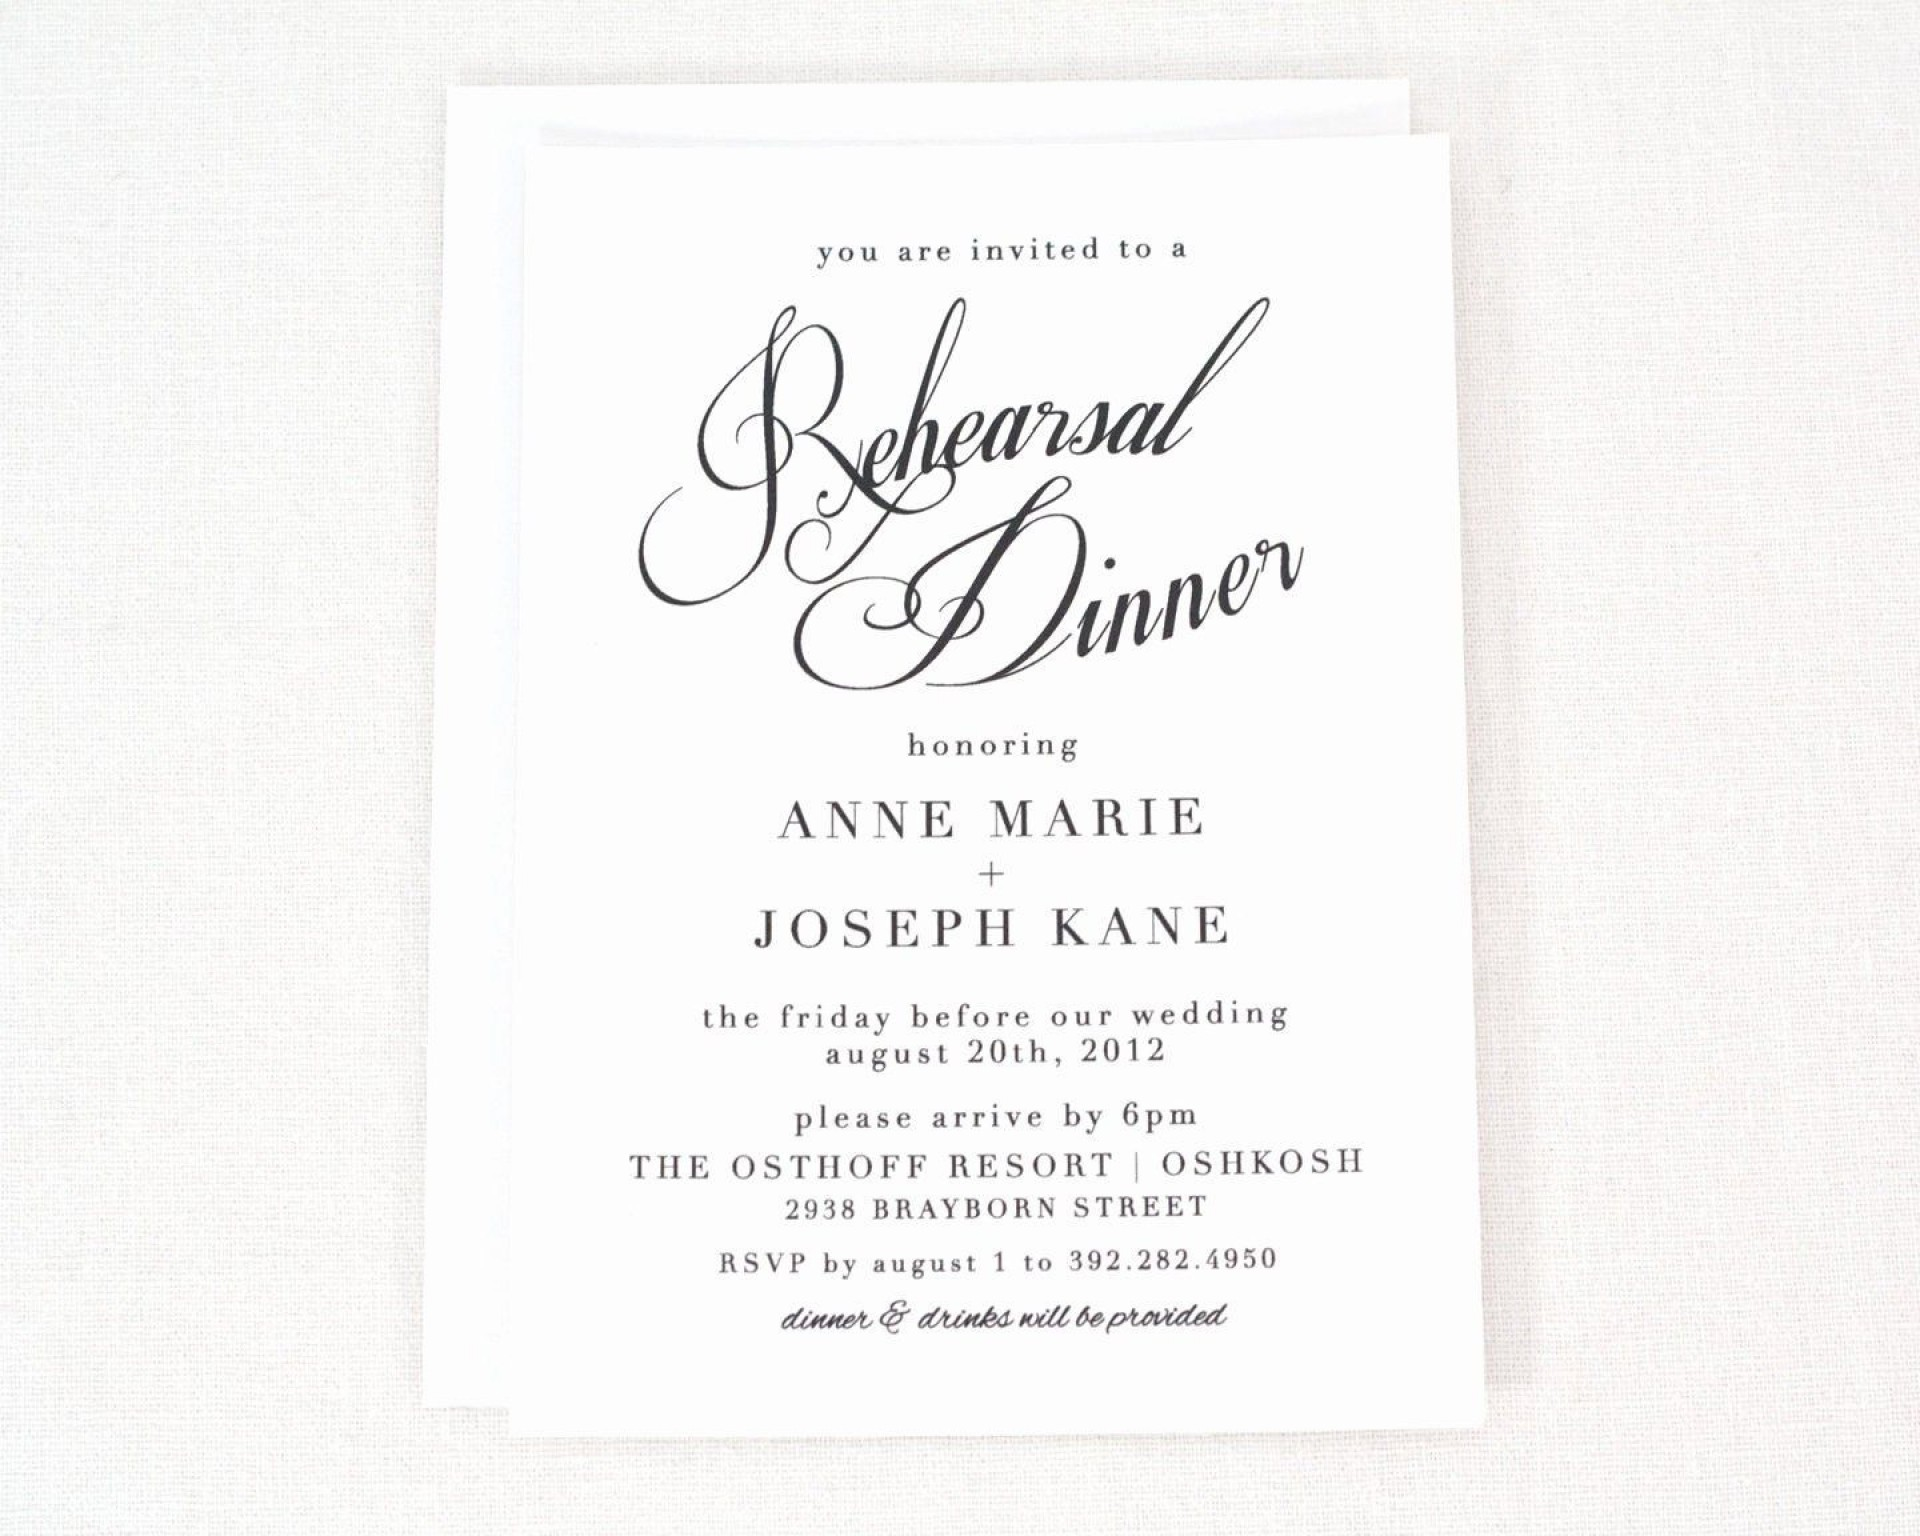 004 Outstanding Free Dinner Invitation Template High Definition  Templates Rehearsal Printable Italian Thanksgiving1920